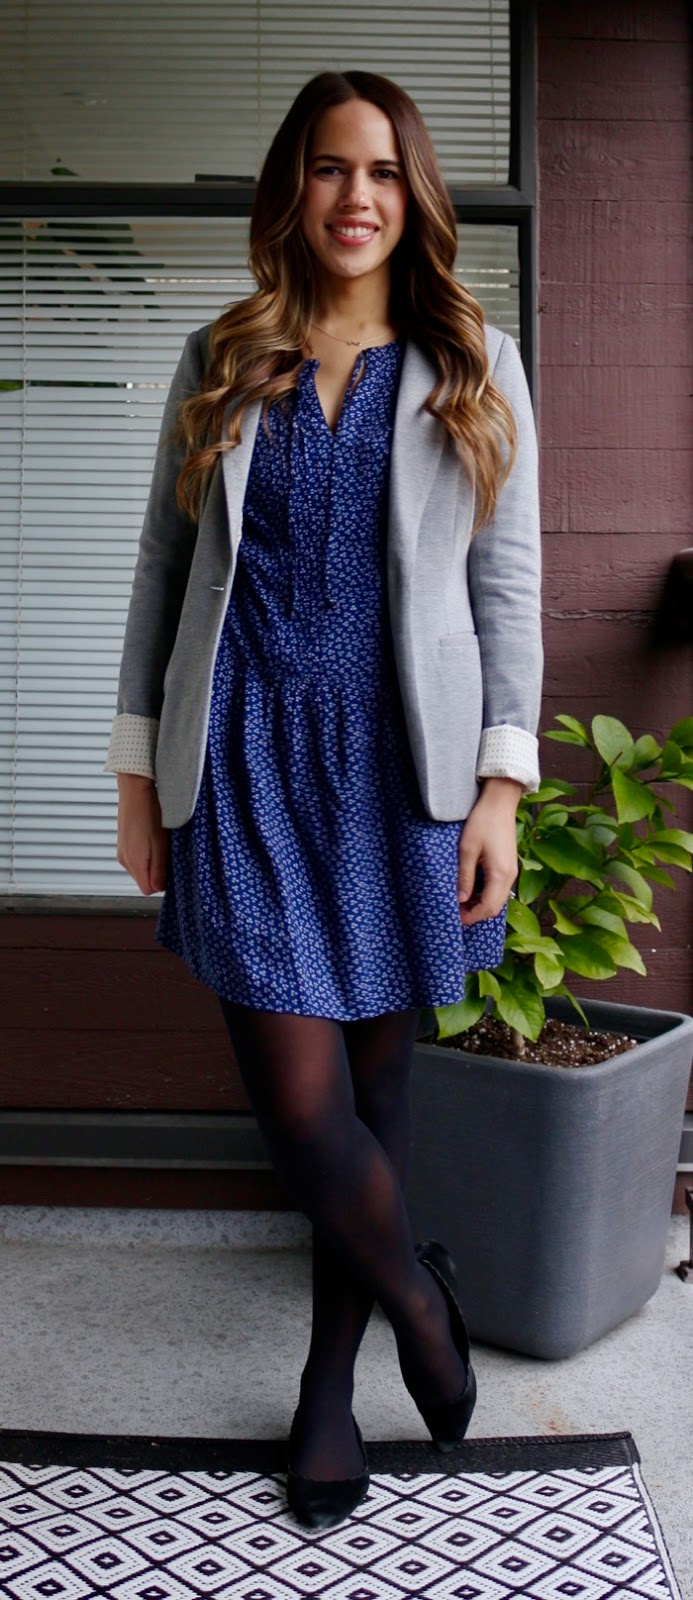 Jules in Flats - Dress with Blazer for Work